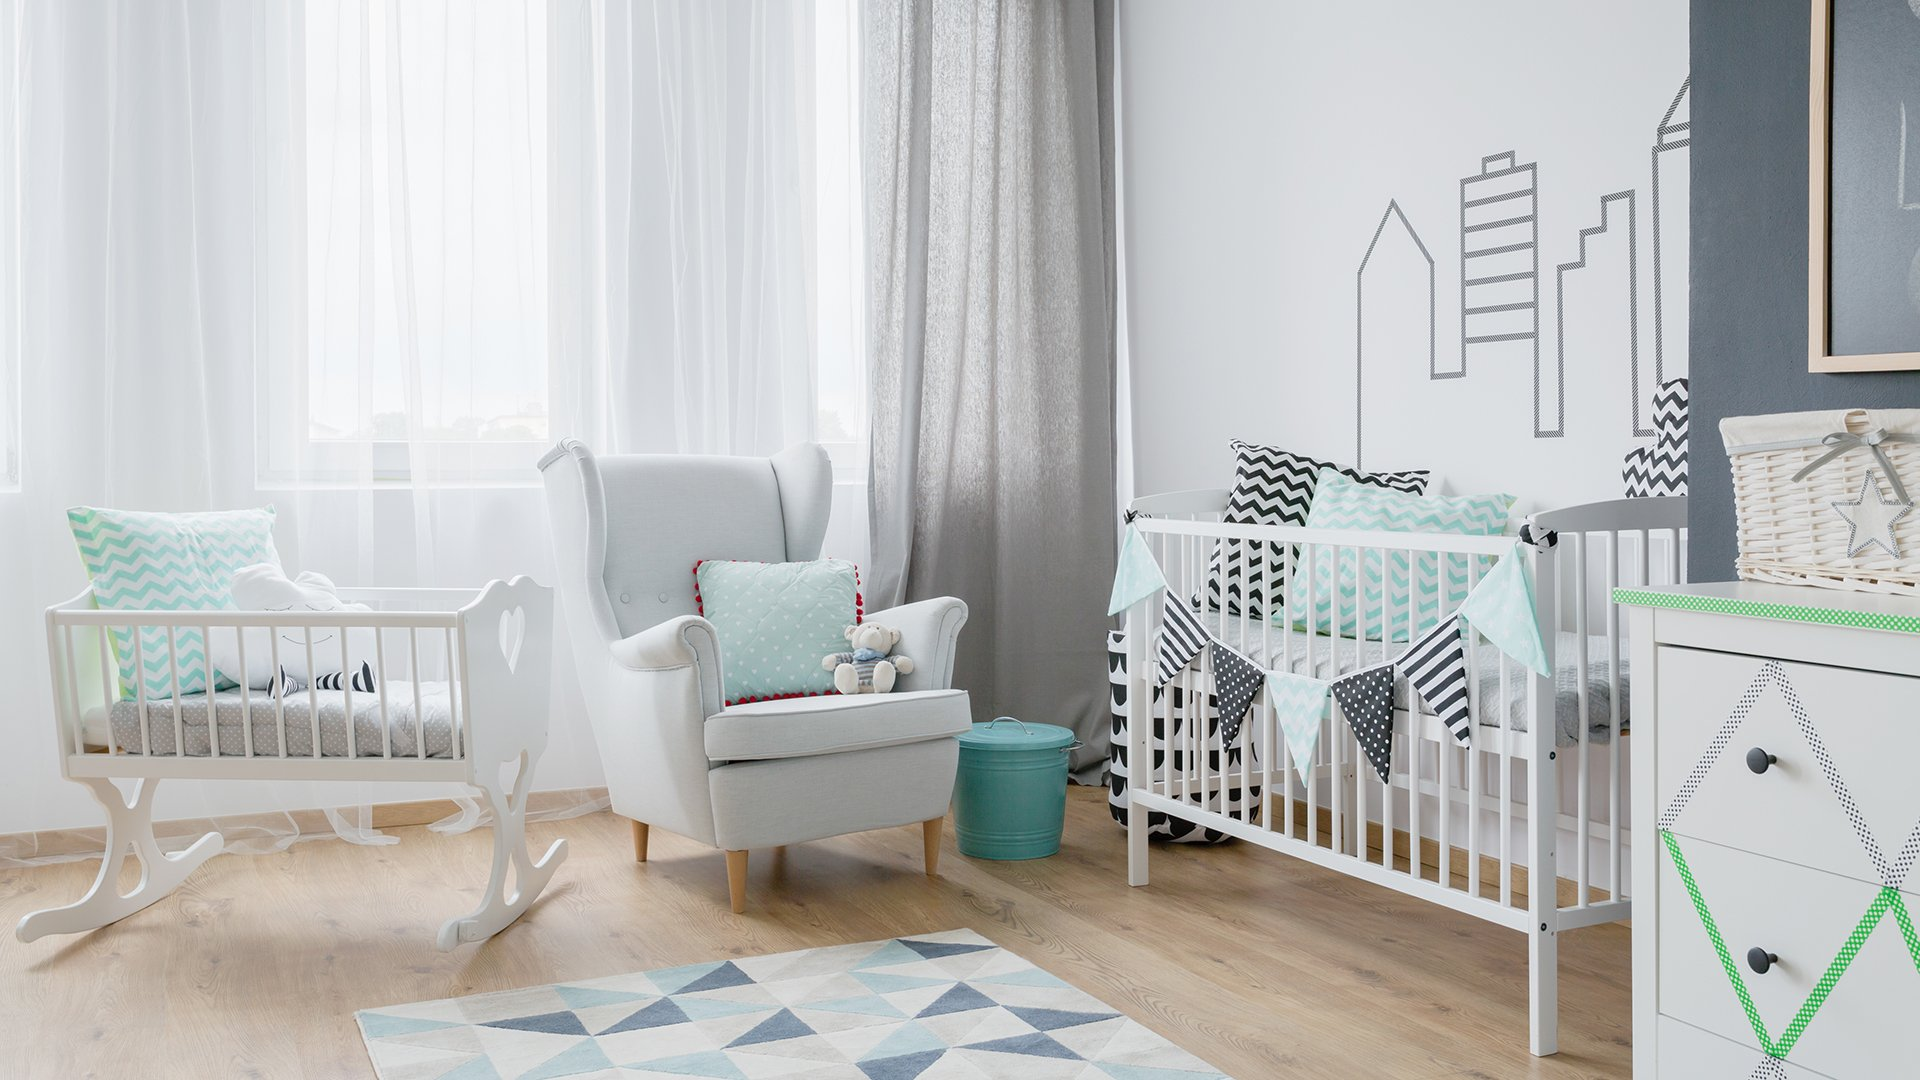 Baby on the way? Submit a photo of your room that needs to turn into a nursery